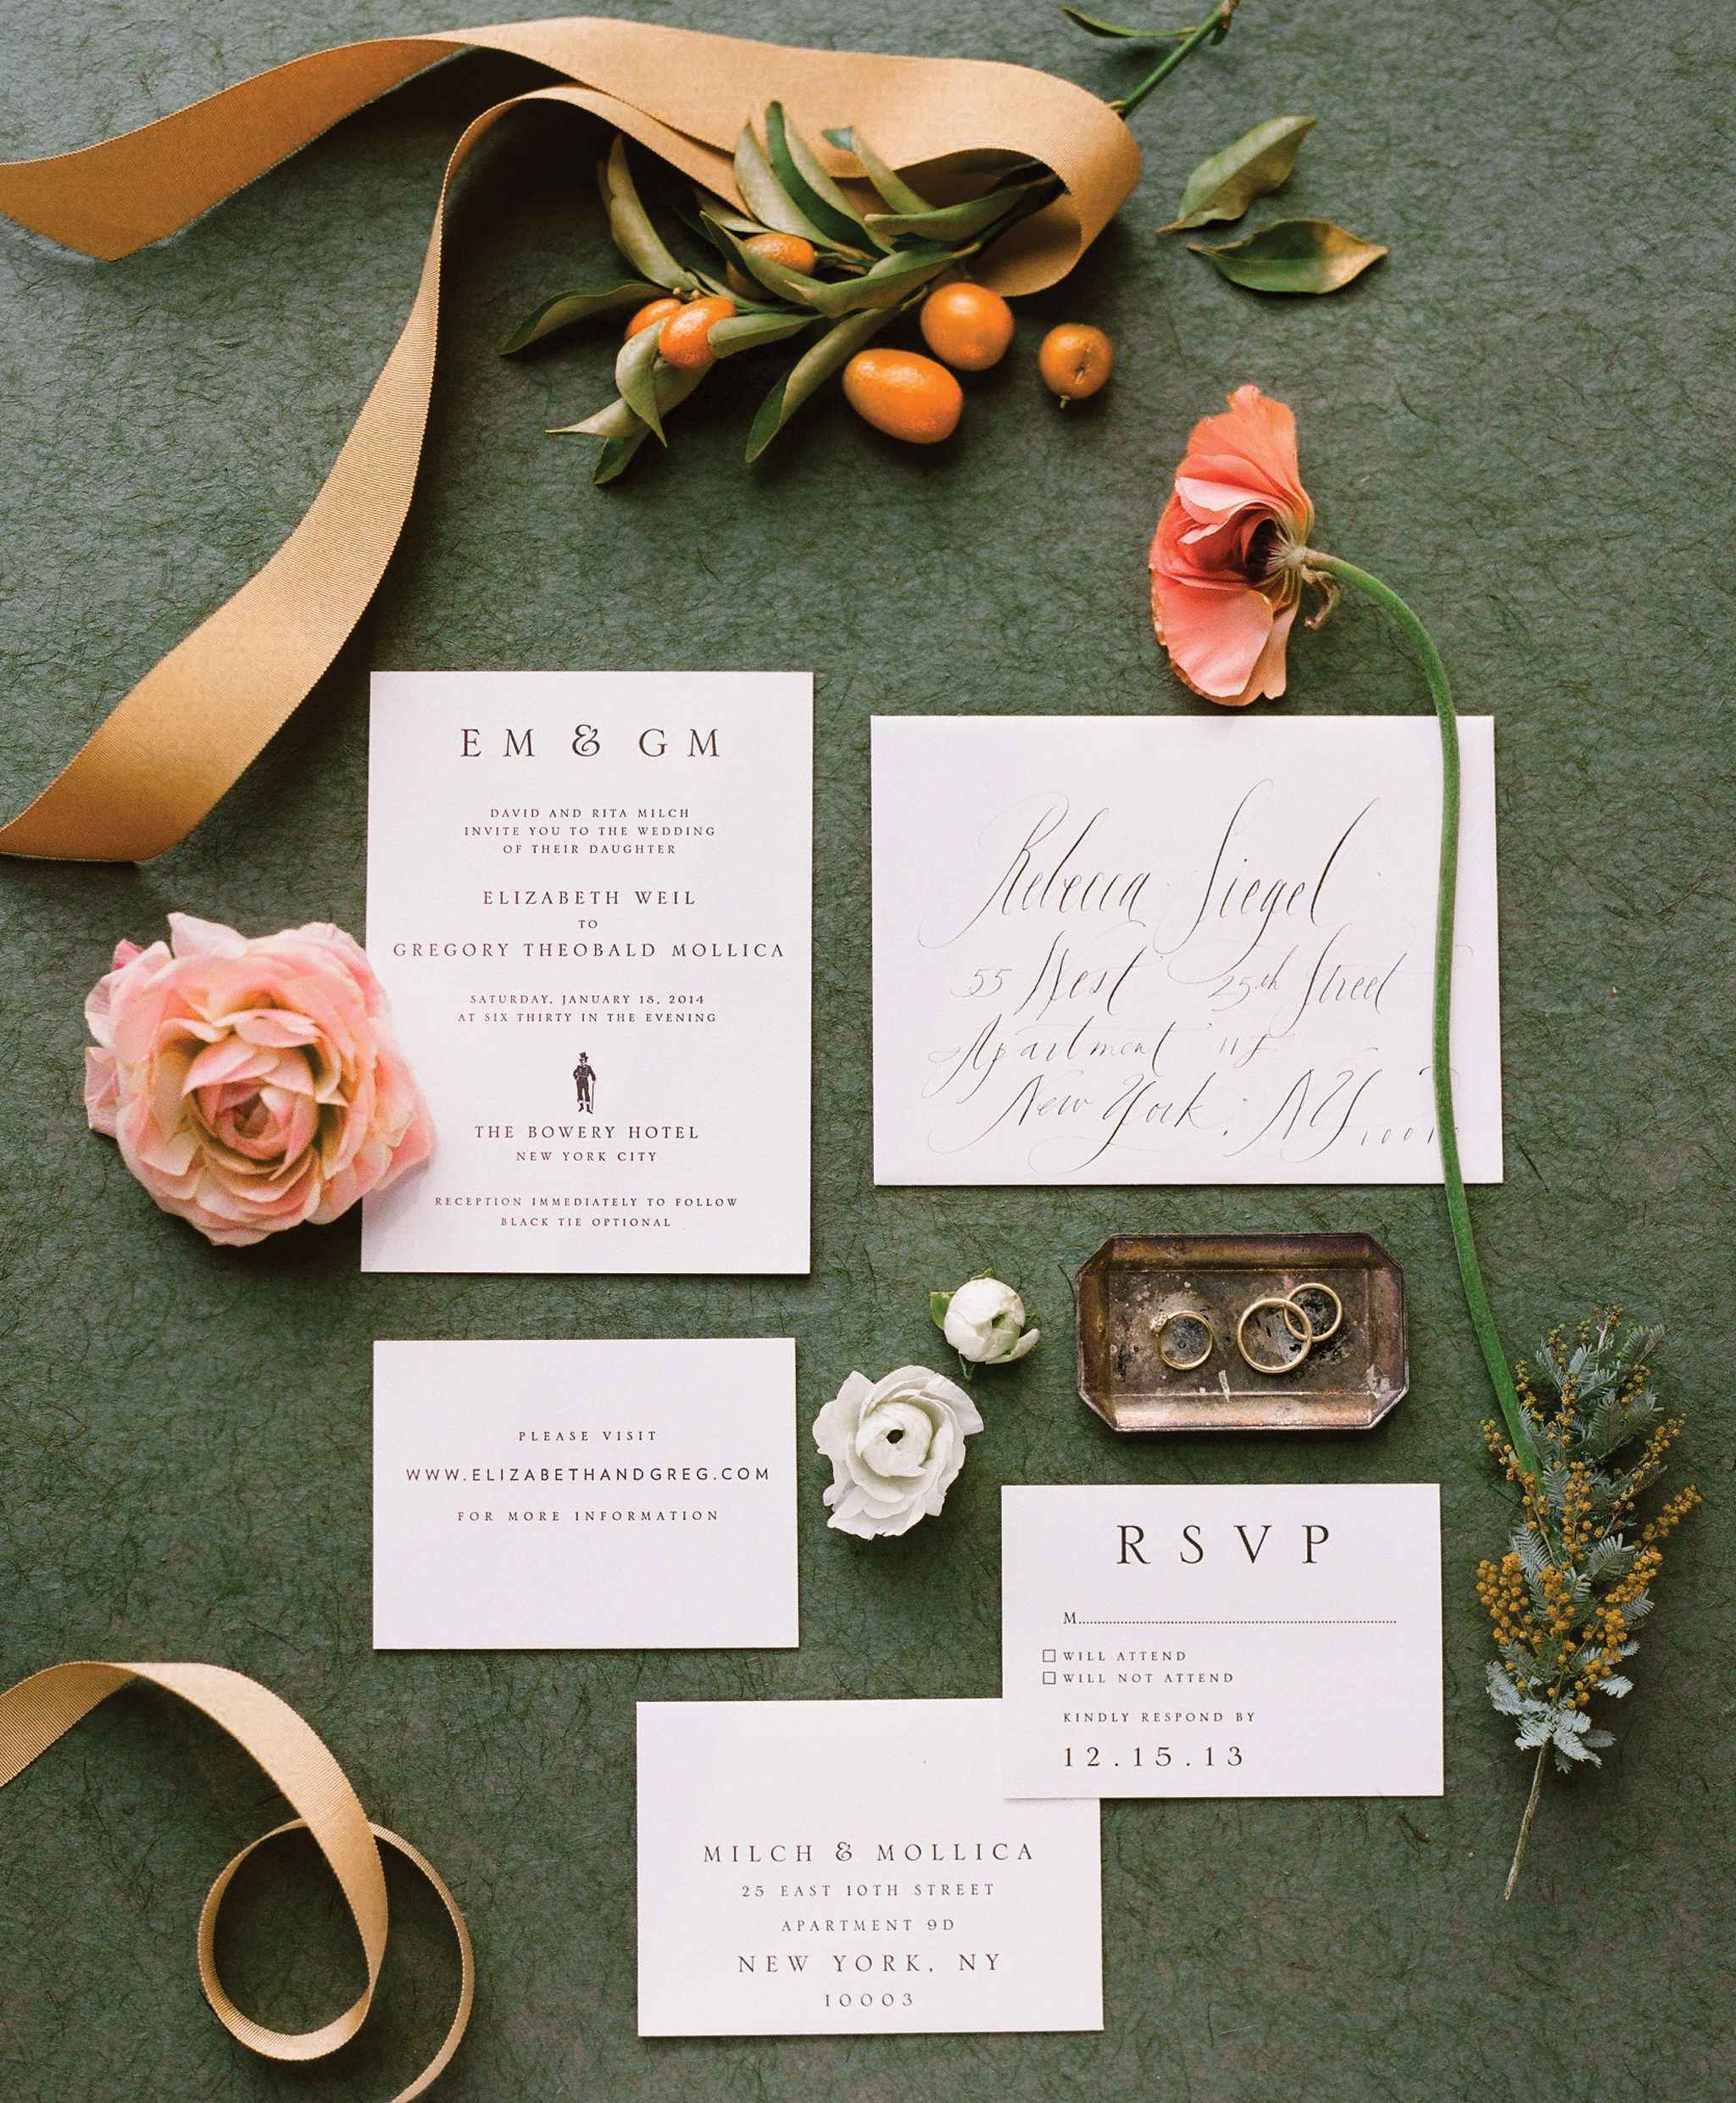 What Is The Etiquette For Wedding Invitations: Your Top 10 Wedding Invitation Etiquette Questions